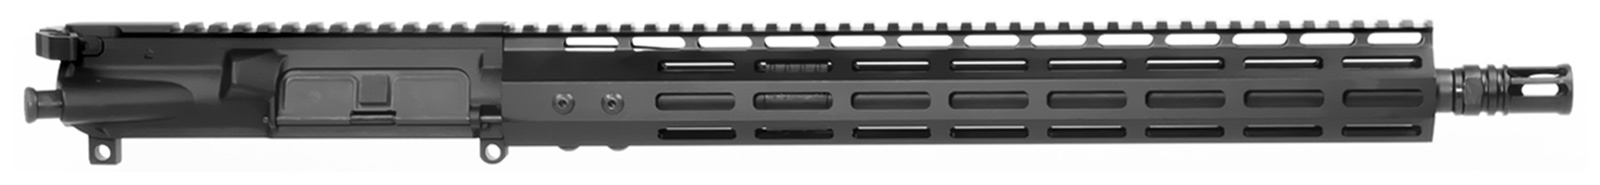 ar-15-complete-upper-assembly-16-300-aac-18-15-cbc-m-lok-ar-15-handguard-rail-bcg-ambi-ch